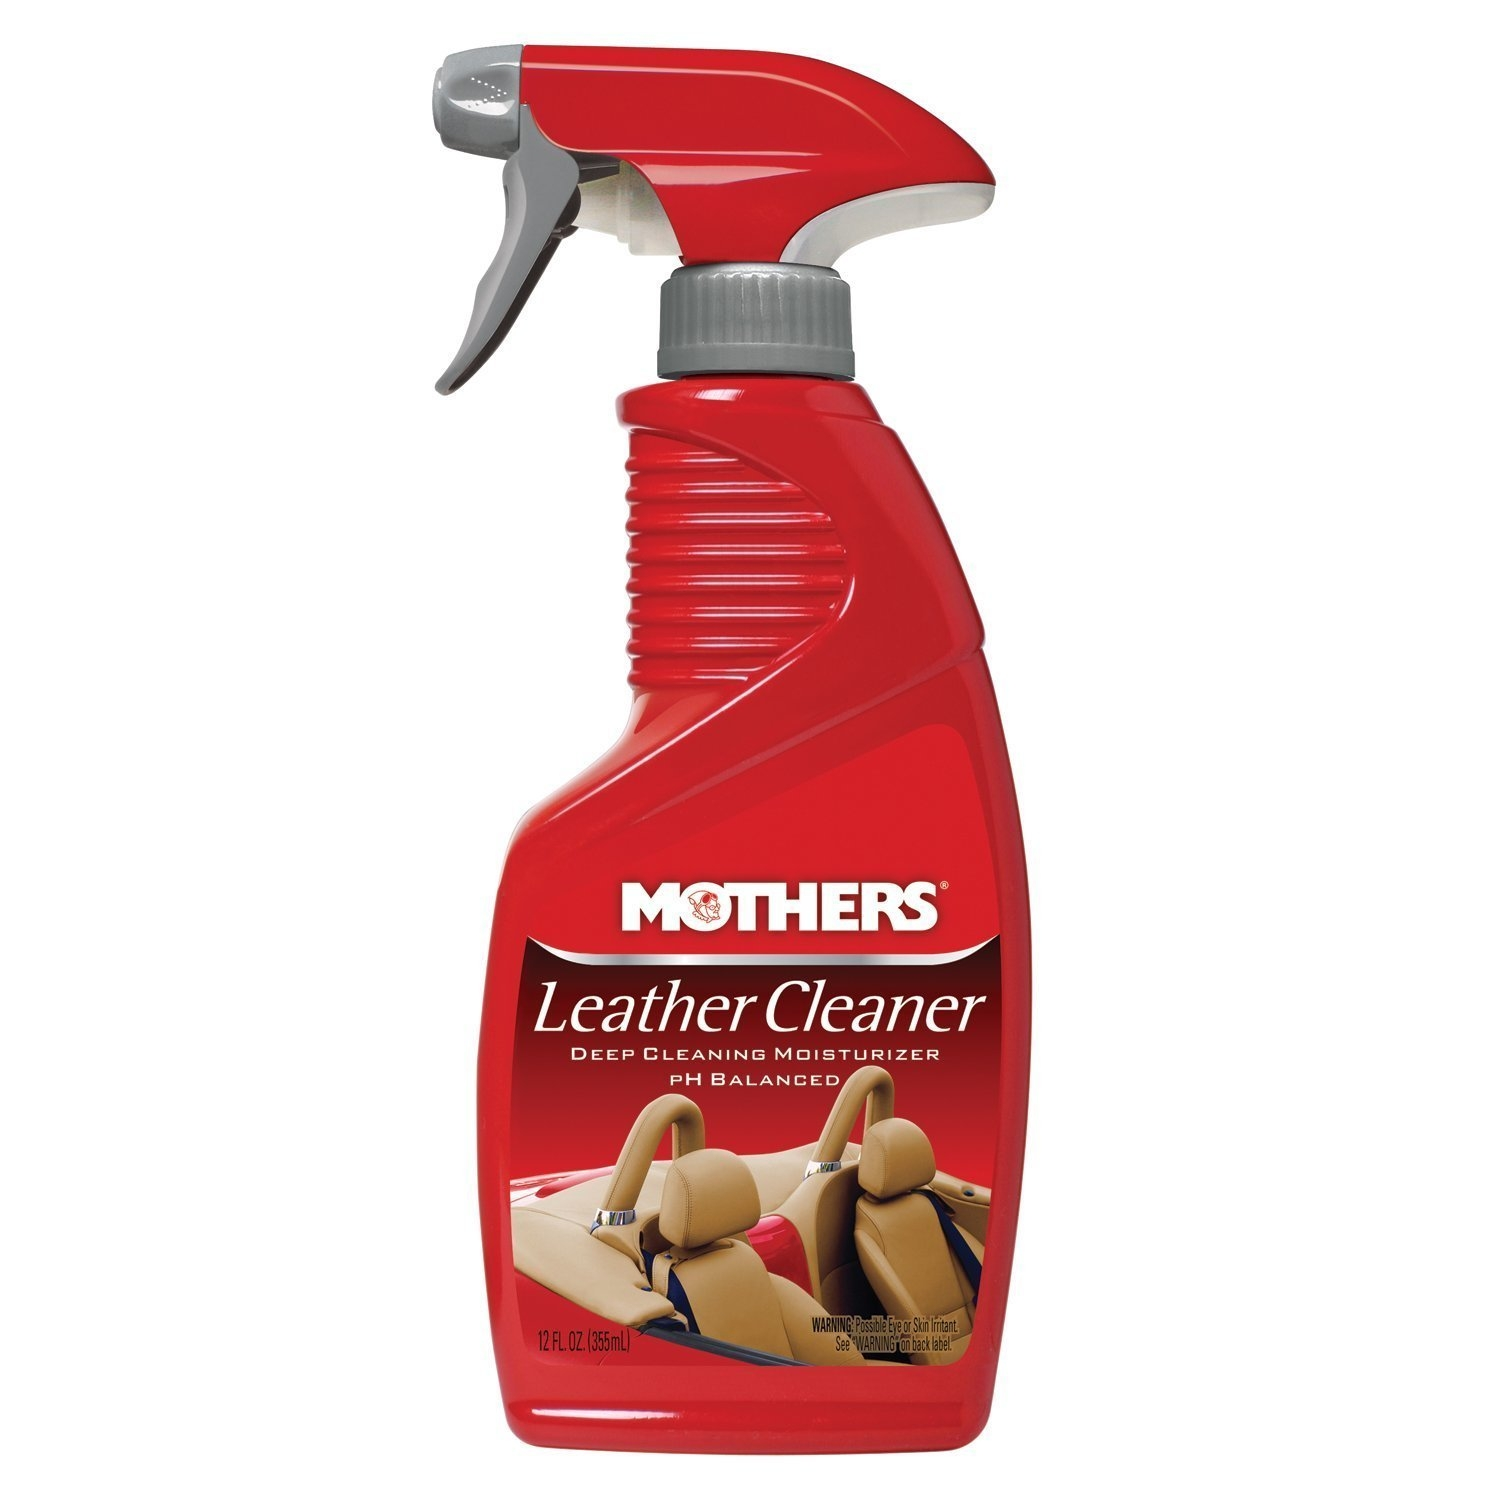 Mothers Leather Cleaner - 12 oz.